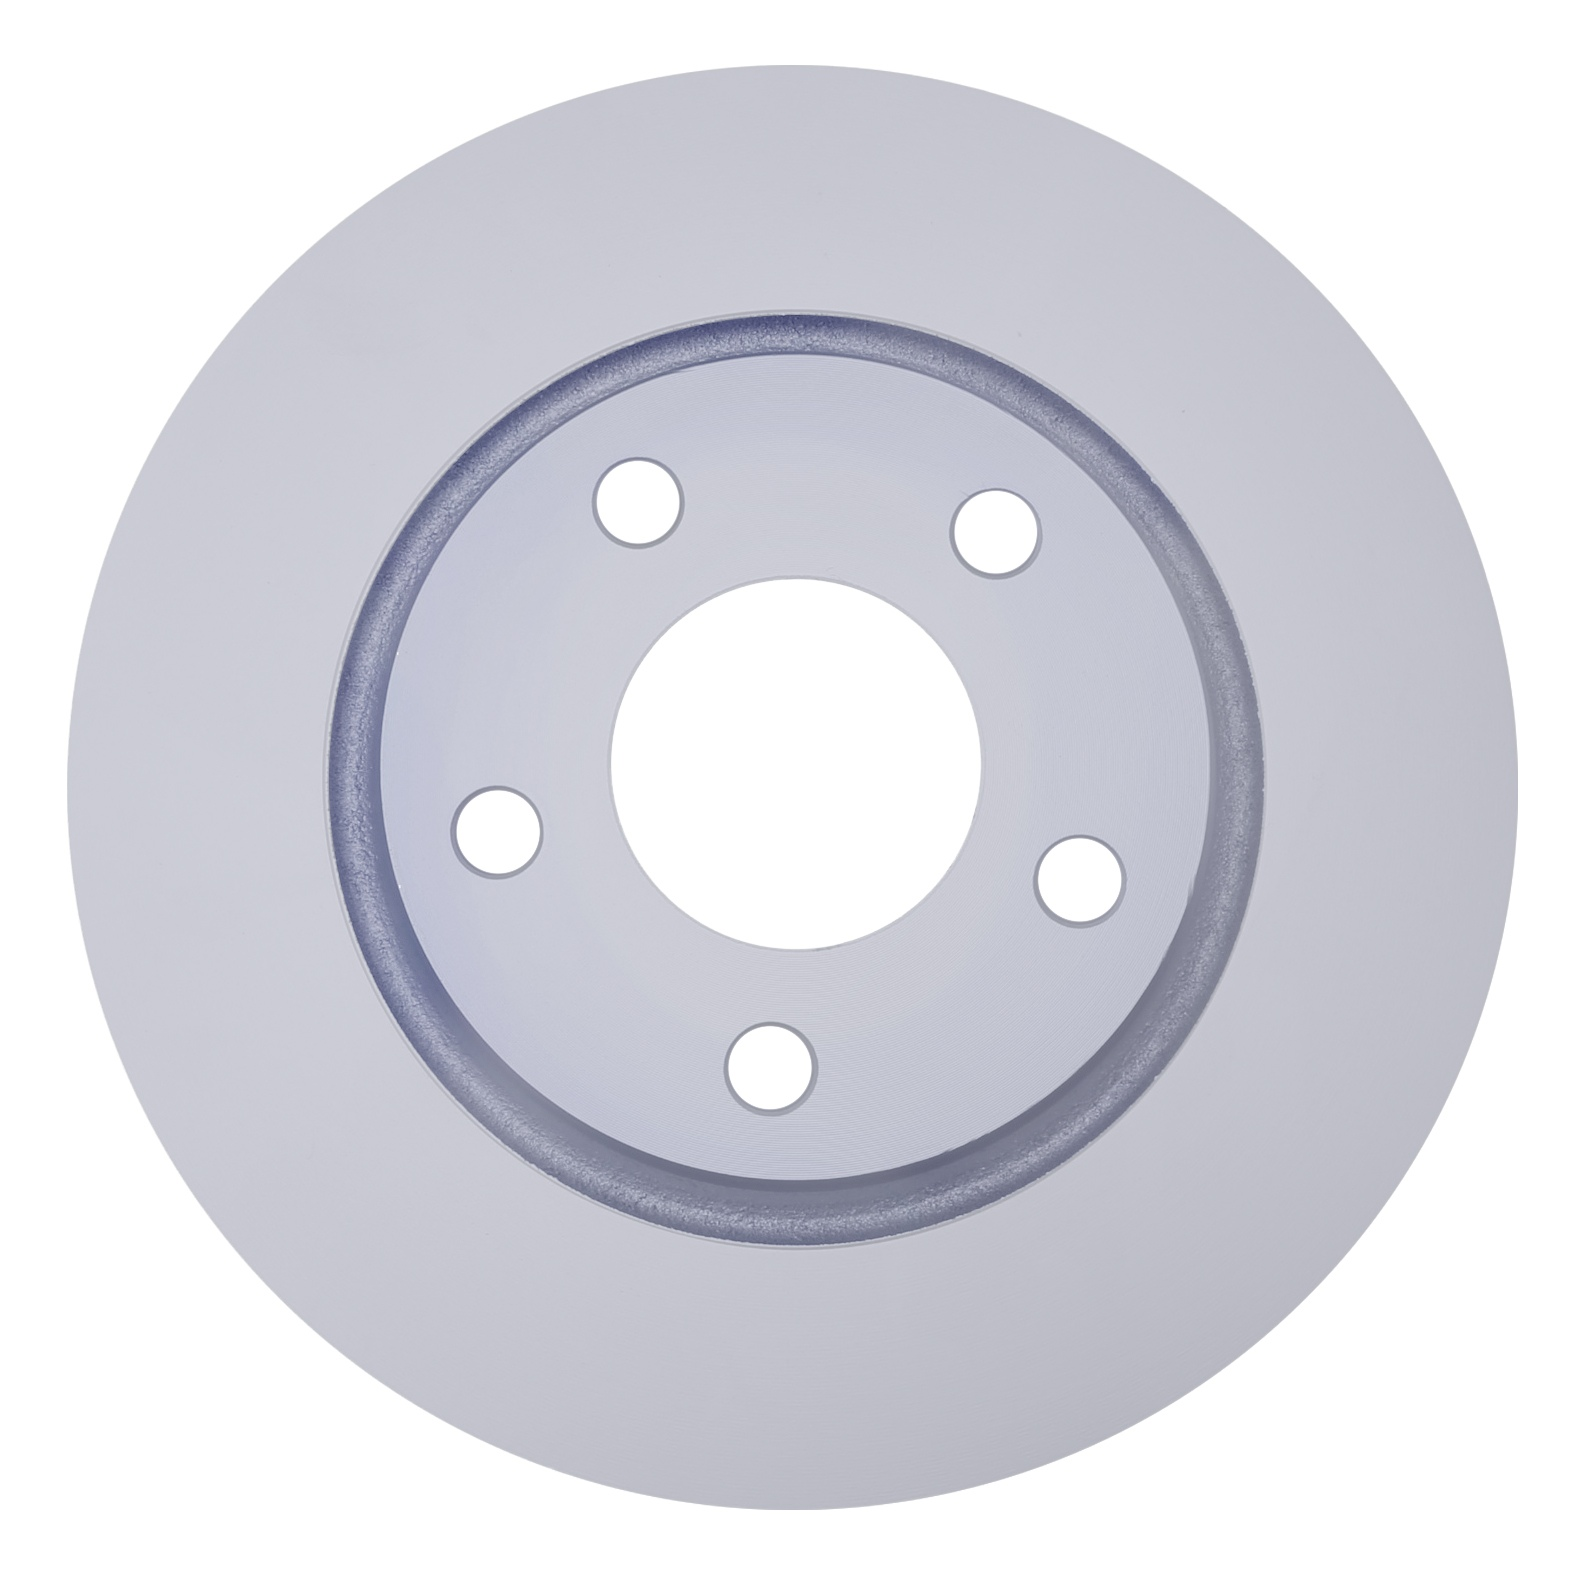 ACDELCO SILVER/ADVANTAGE - Coated Disc Brake Rotor (Front) - DCD 18A1621AC